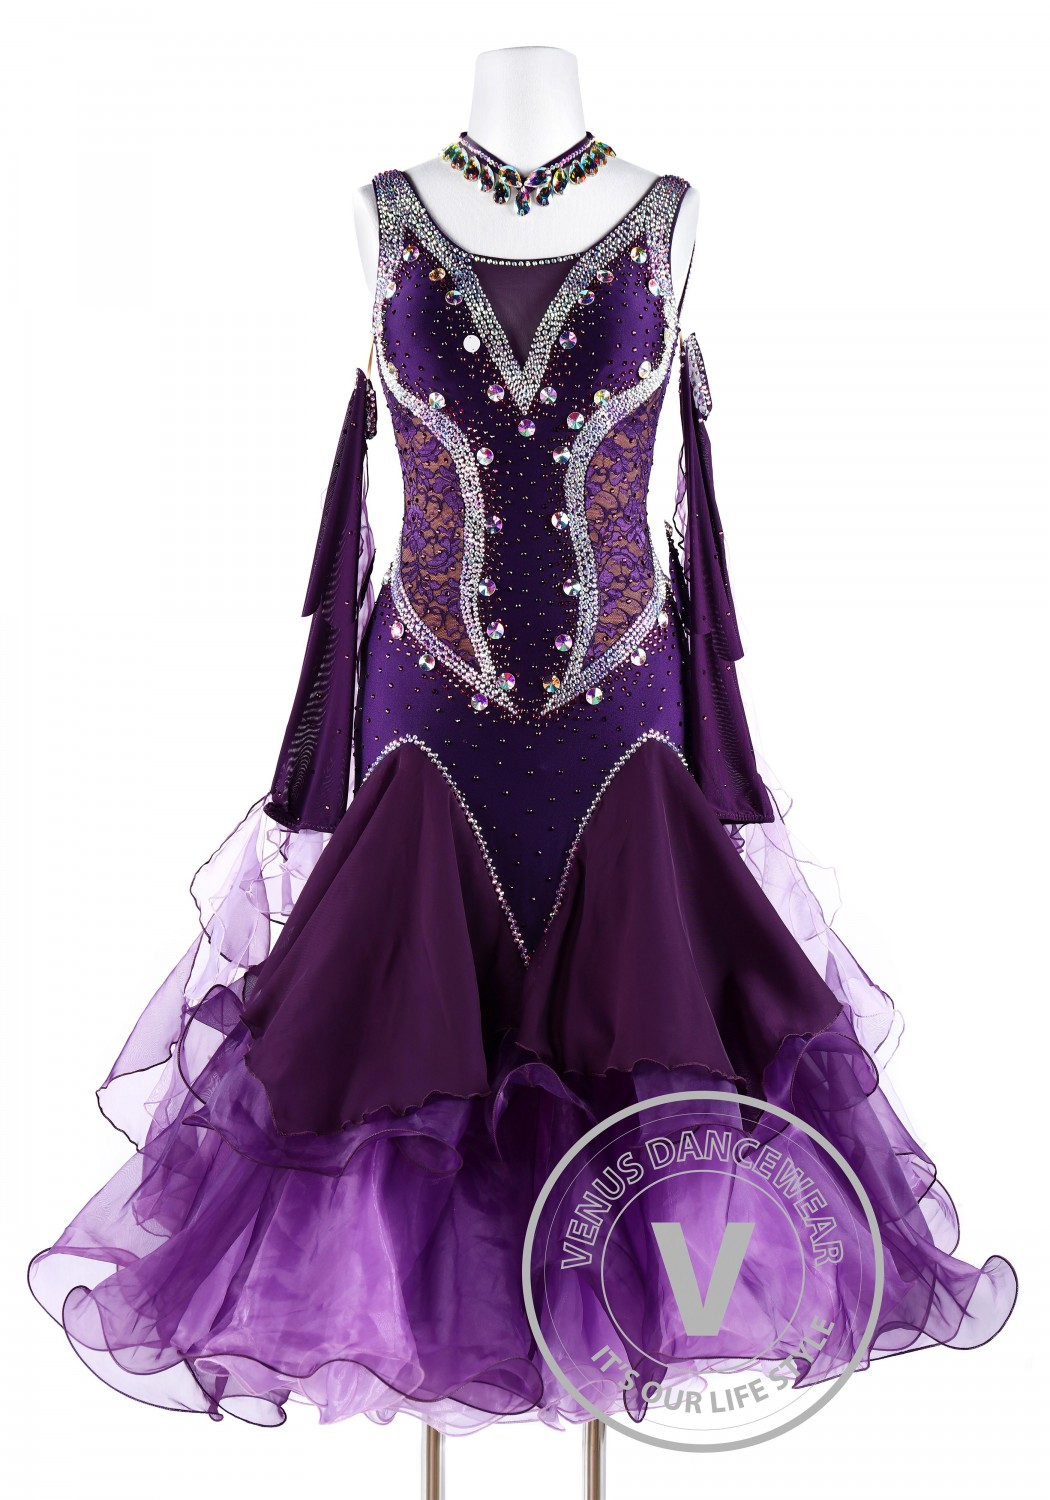 Plum Lace Smooth Waltz Tango Quickstep Ballroom Competition Dance Dress